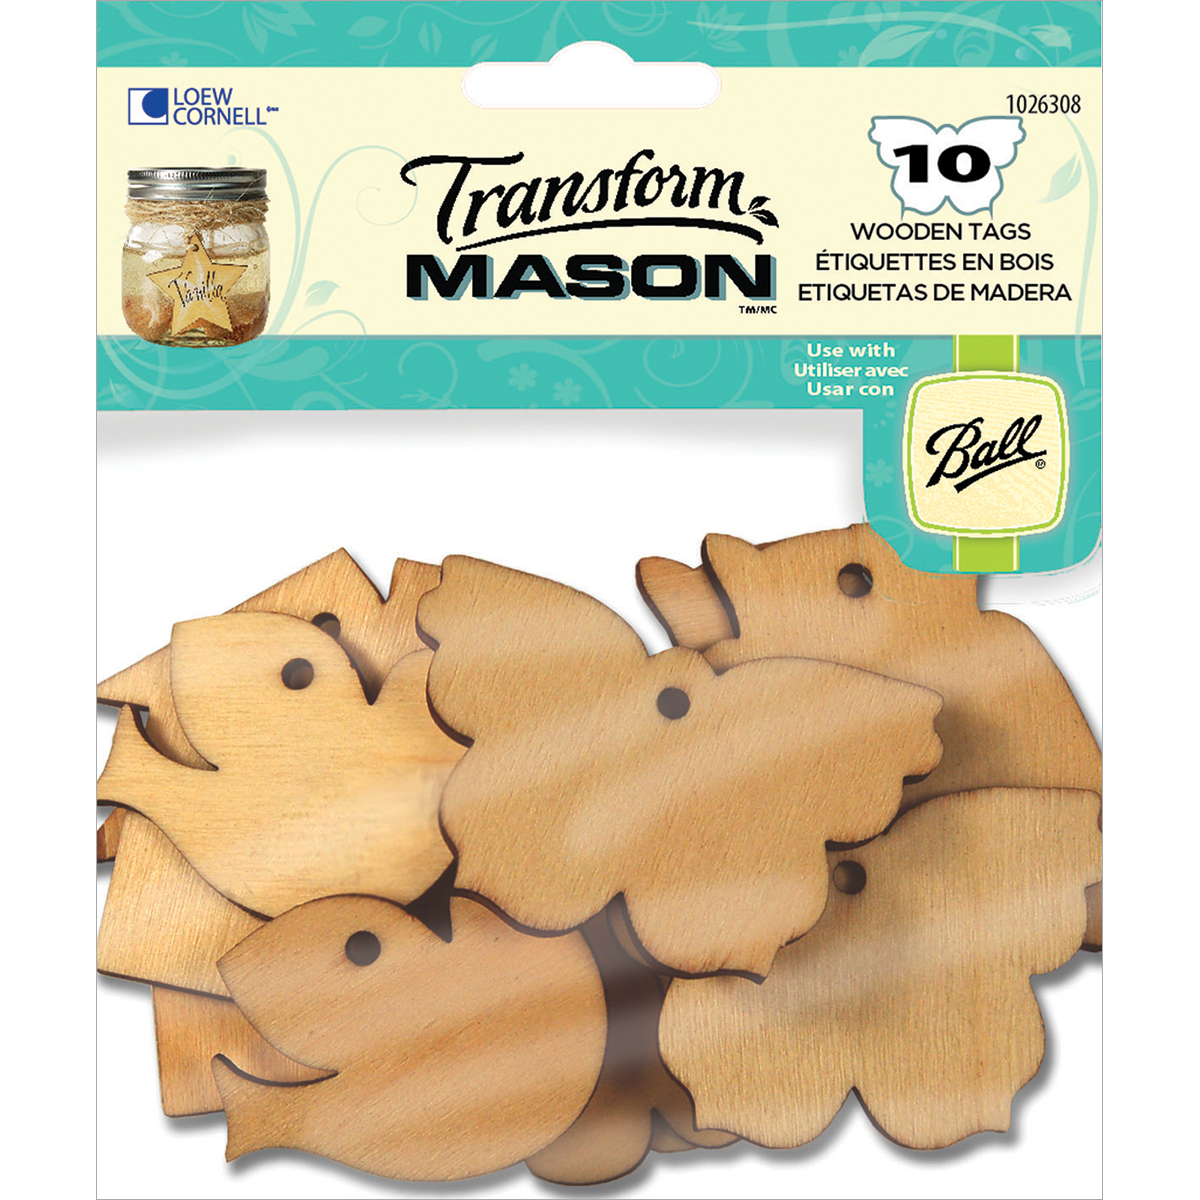 Loew-Cornell 1026-308 Wooden Tags, Home Sweet Home, 10-Pack Multi-Colored